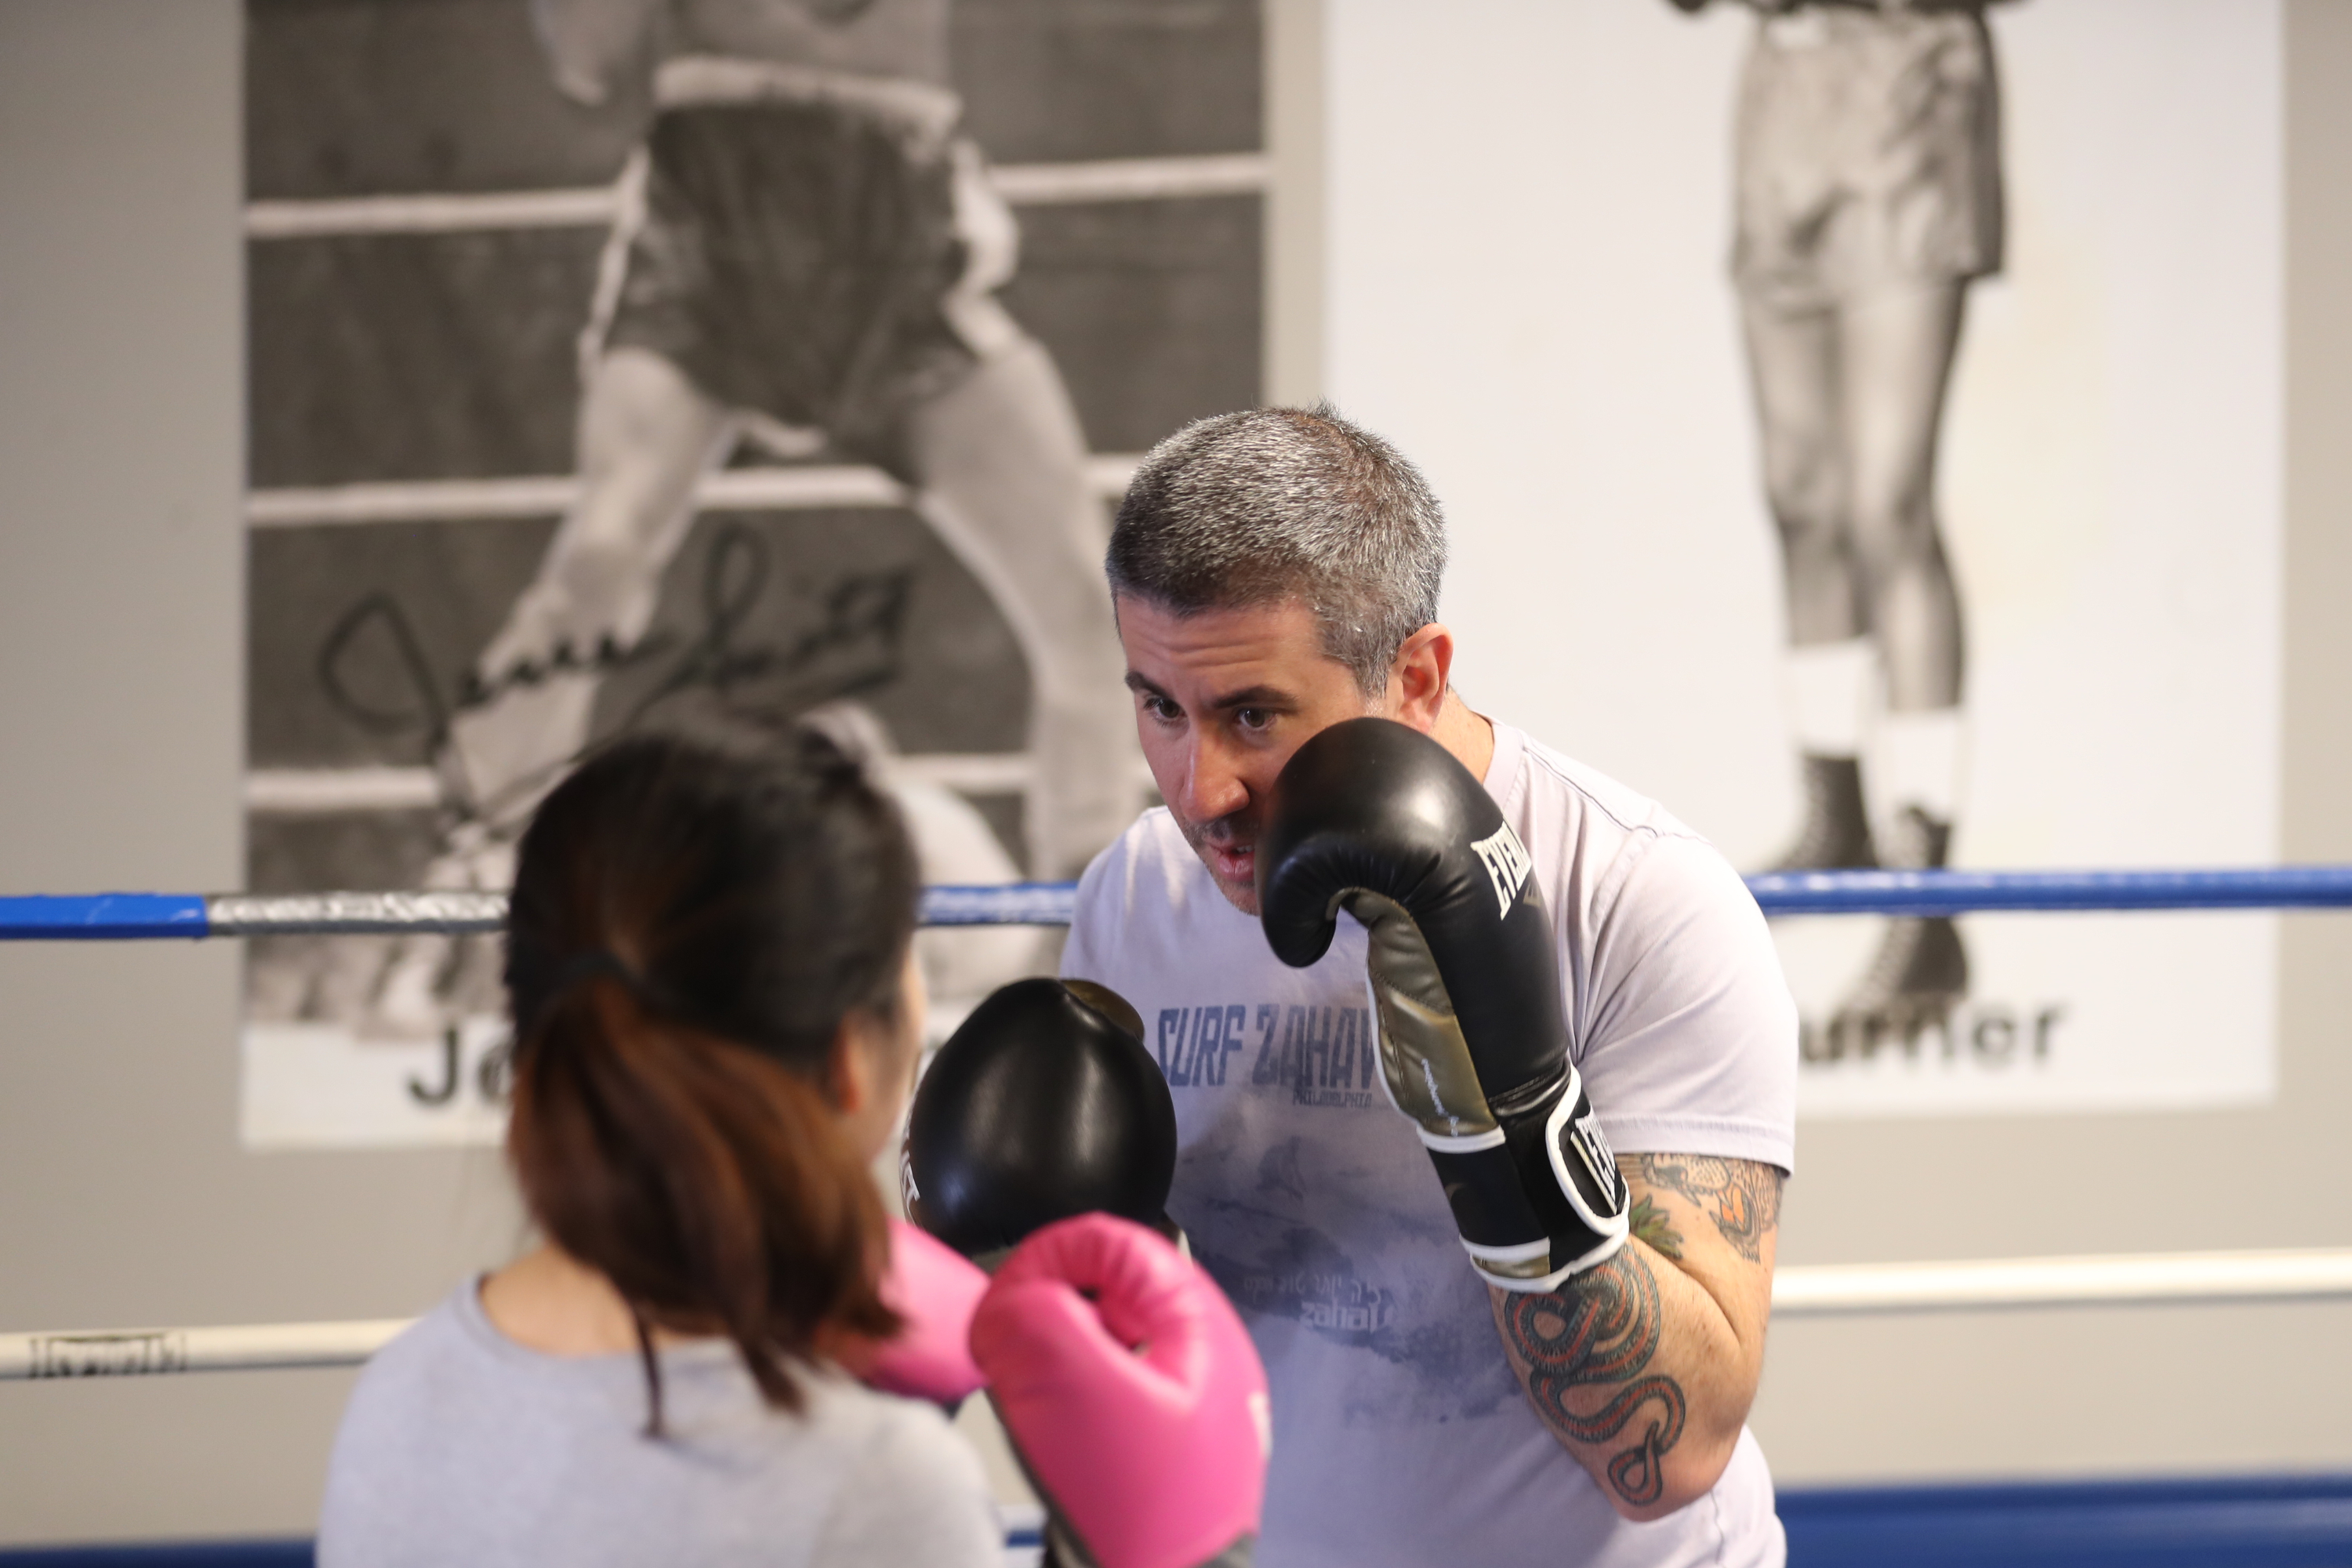 Inquirer reporter Bethany Ao spars with Michael Solomonov at Joe Hand Boxing Gym in Philadelphia April 30, 2018.